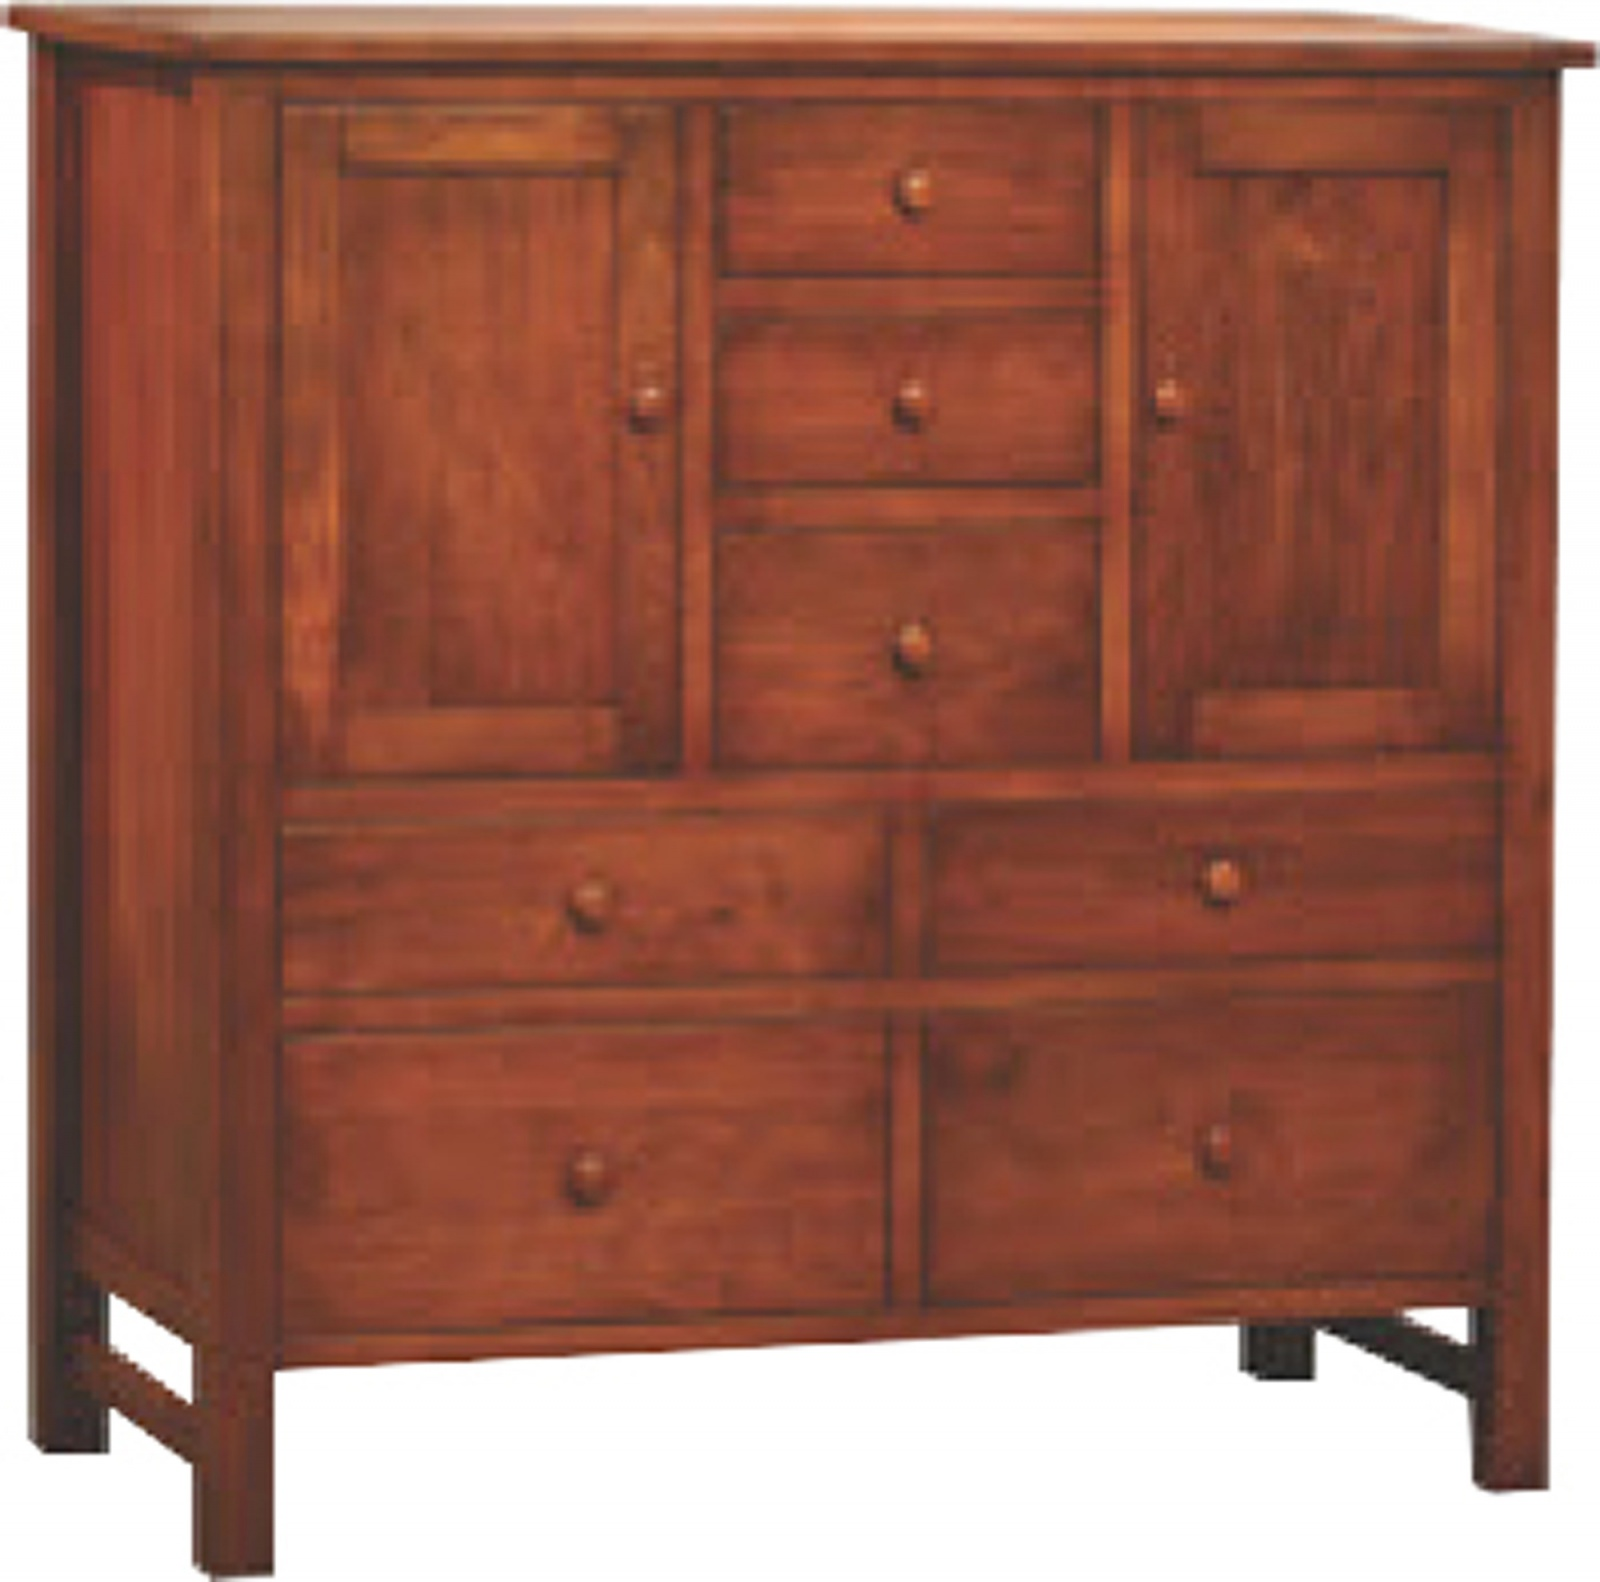 CA-553 His & Hers Chest.jpg